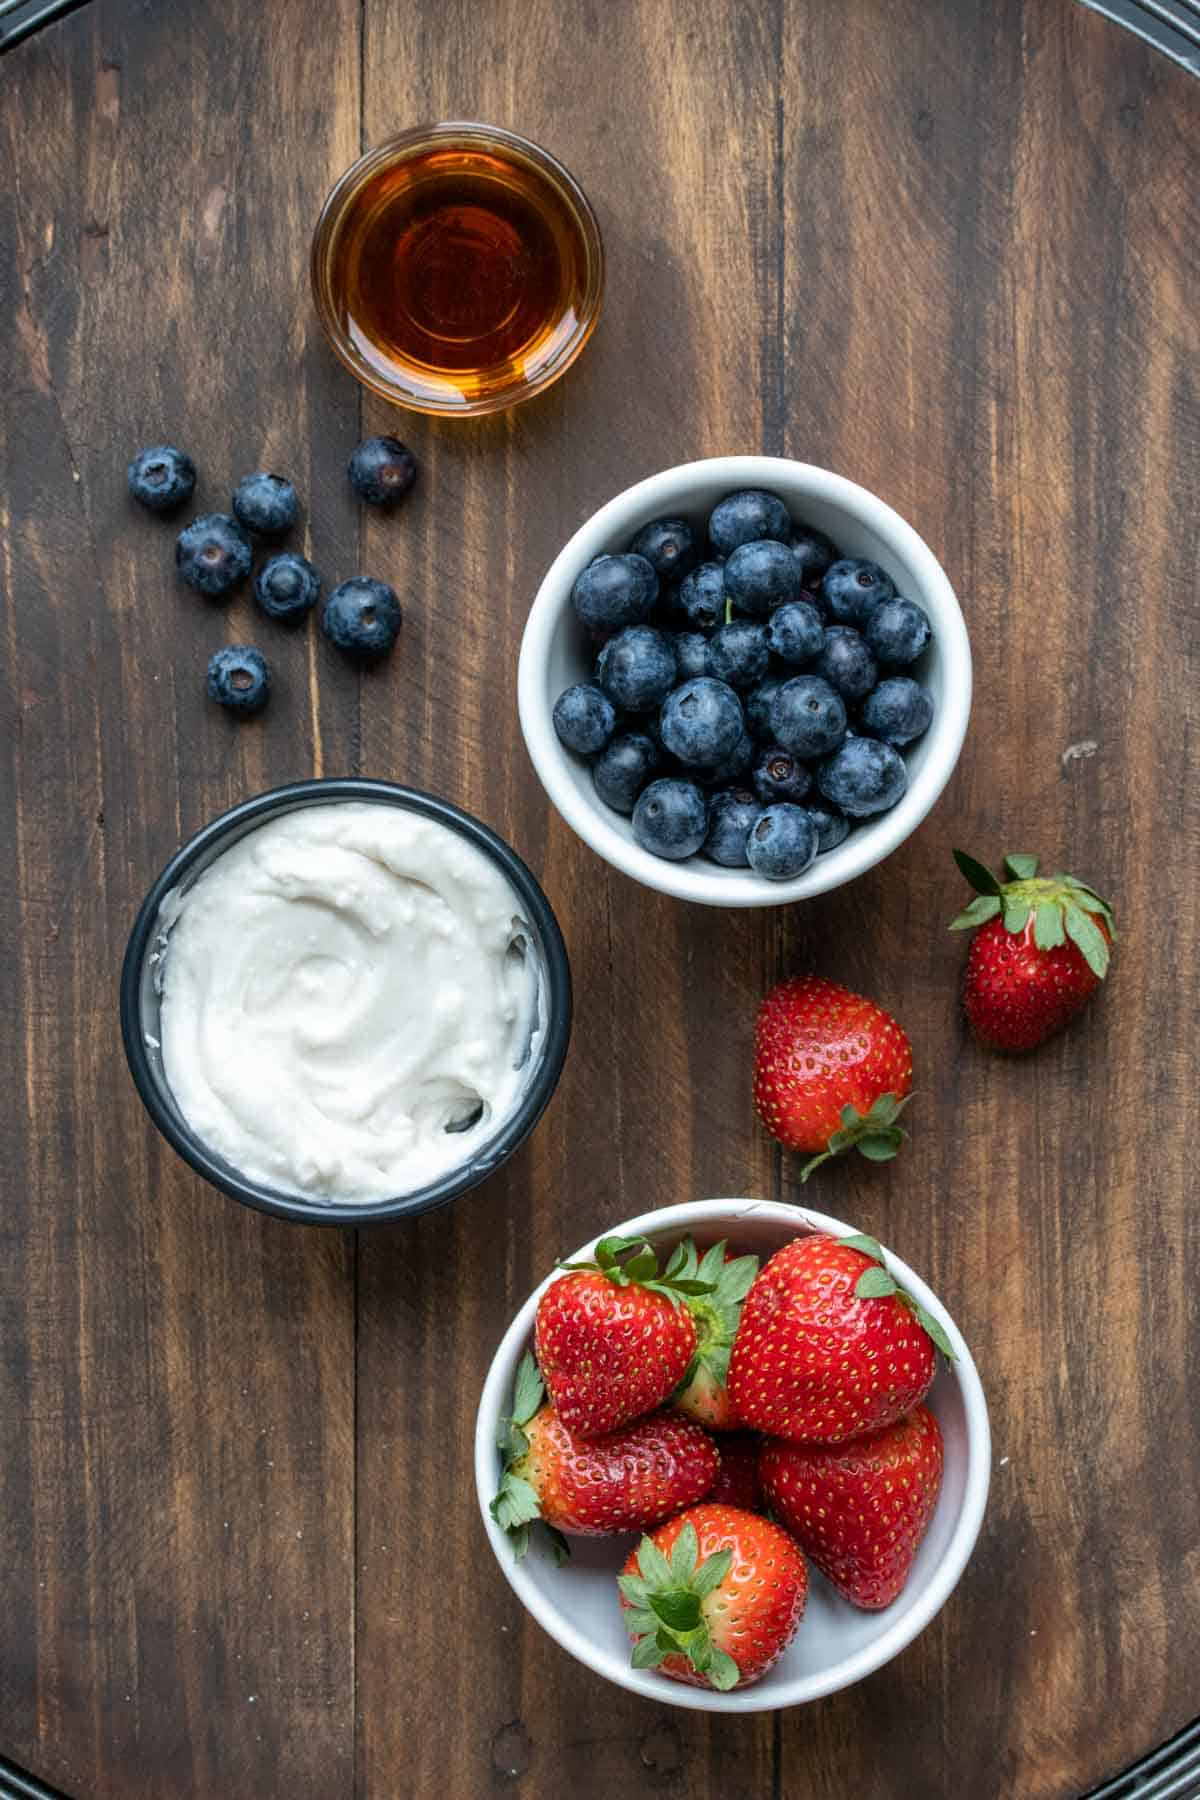 Bowls of fruit, yogurt and maple syrup on a wooden surface